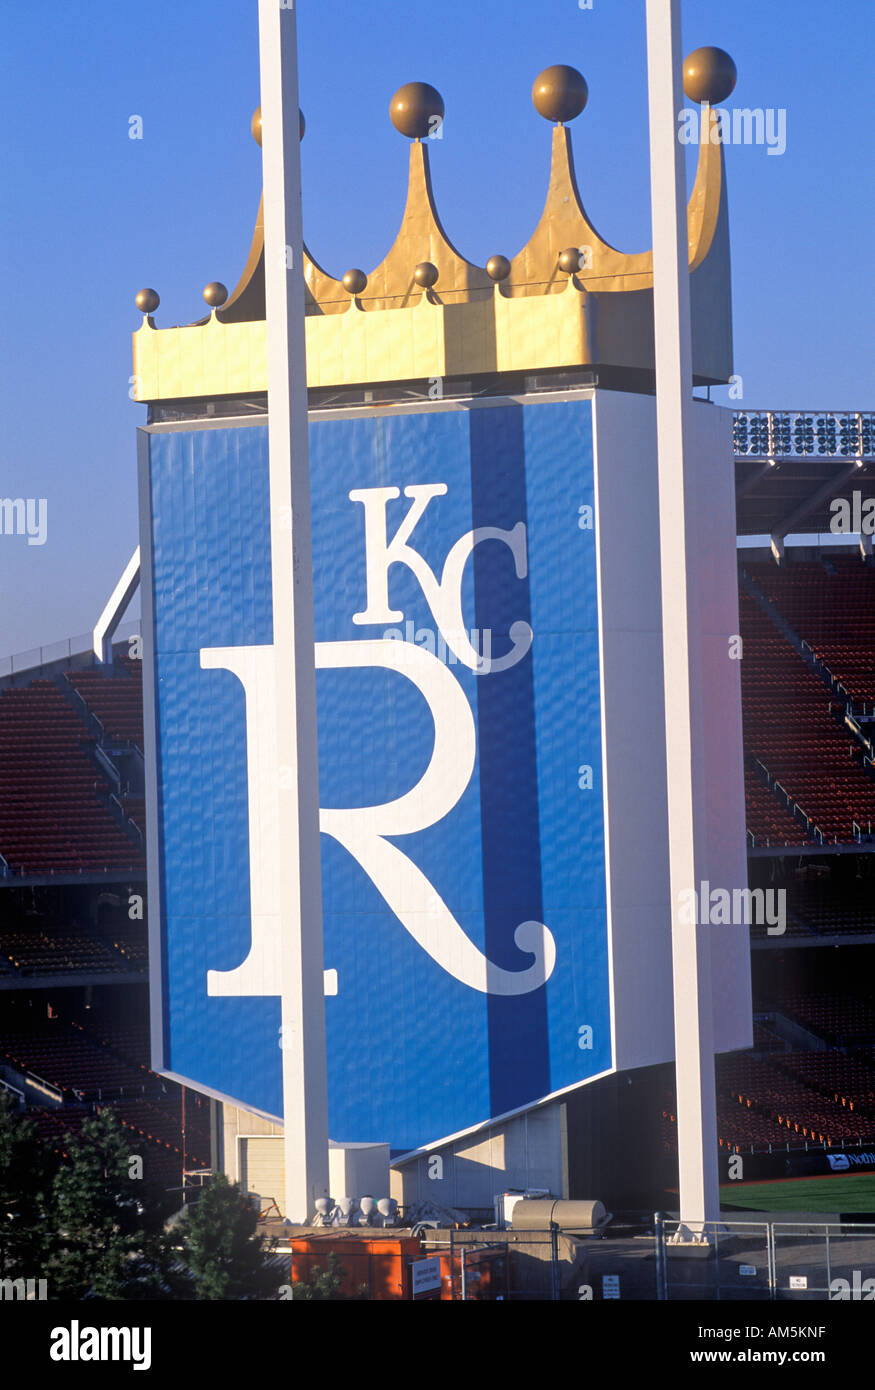 Kansas City Royals Baseball Stadium Kansas City MO - Stock Image